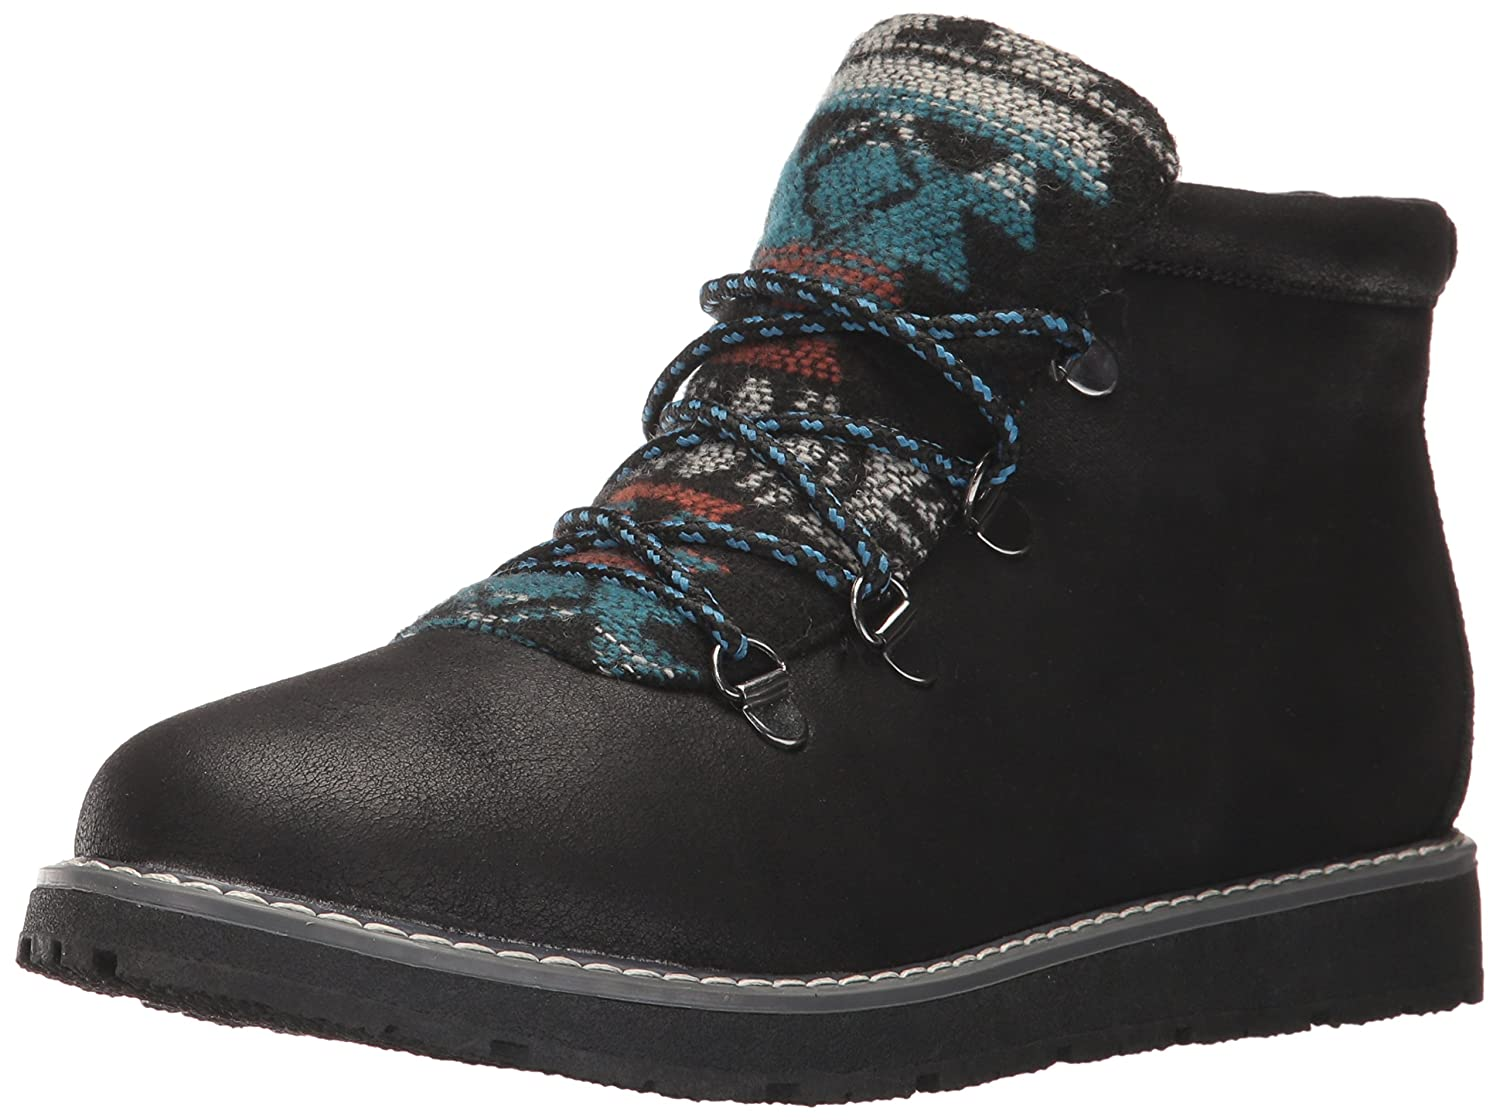 Skechers BOBS from Women's Bobs Alpine-Keep Trekking. Aztec Tongue W Memory Foam. Hiking Boot B06XGYHF1C 5.5 B(M) US|Black